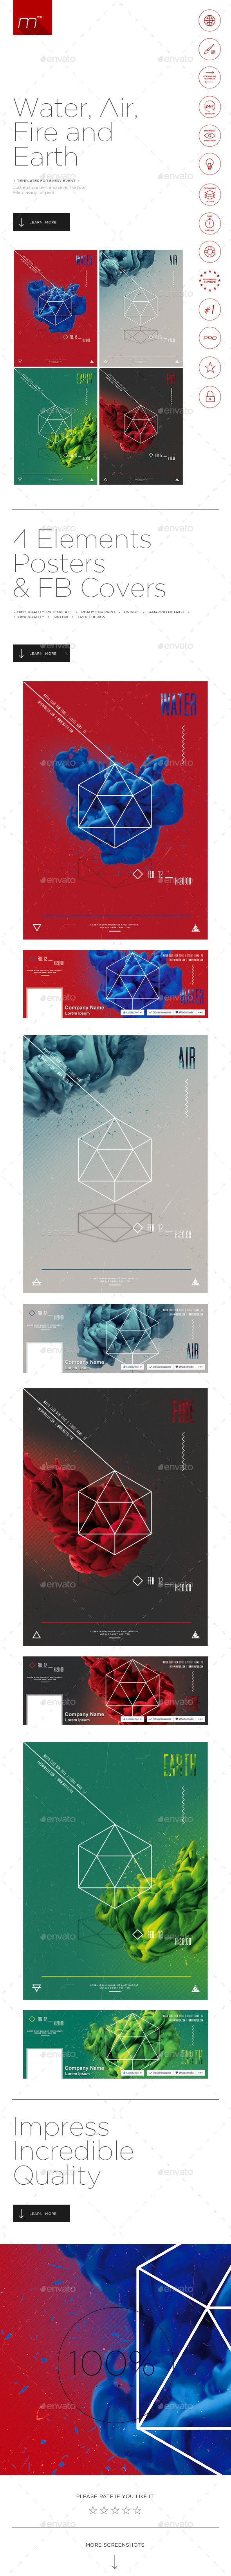 GraphicRiver 4 Elements Posters 11744063